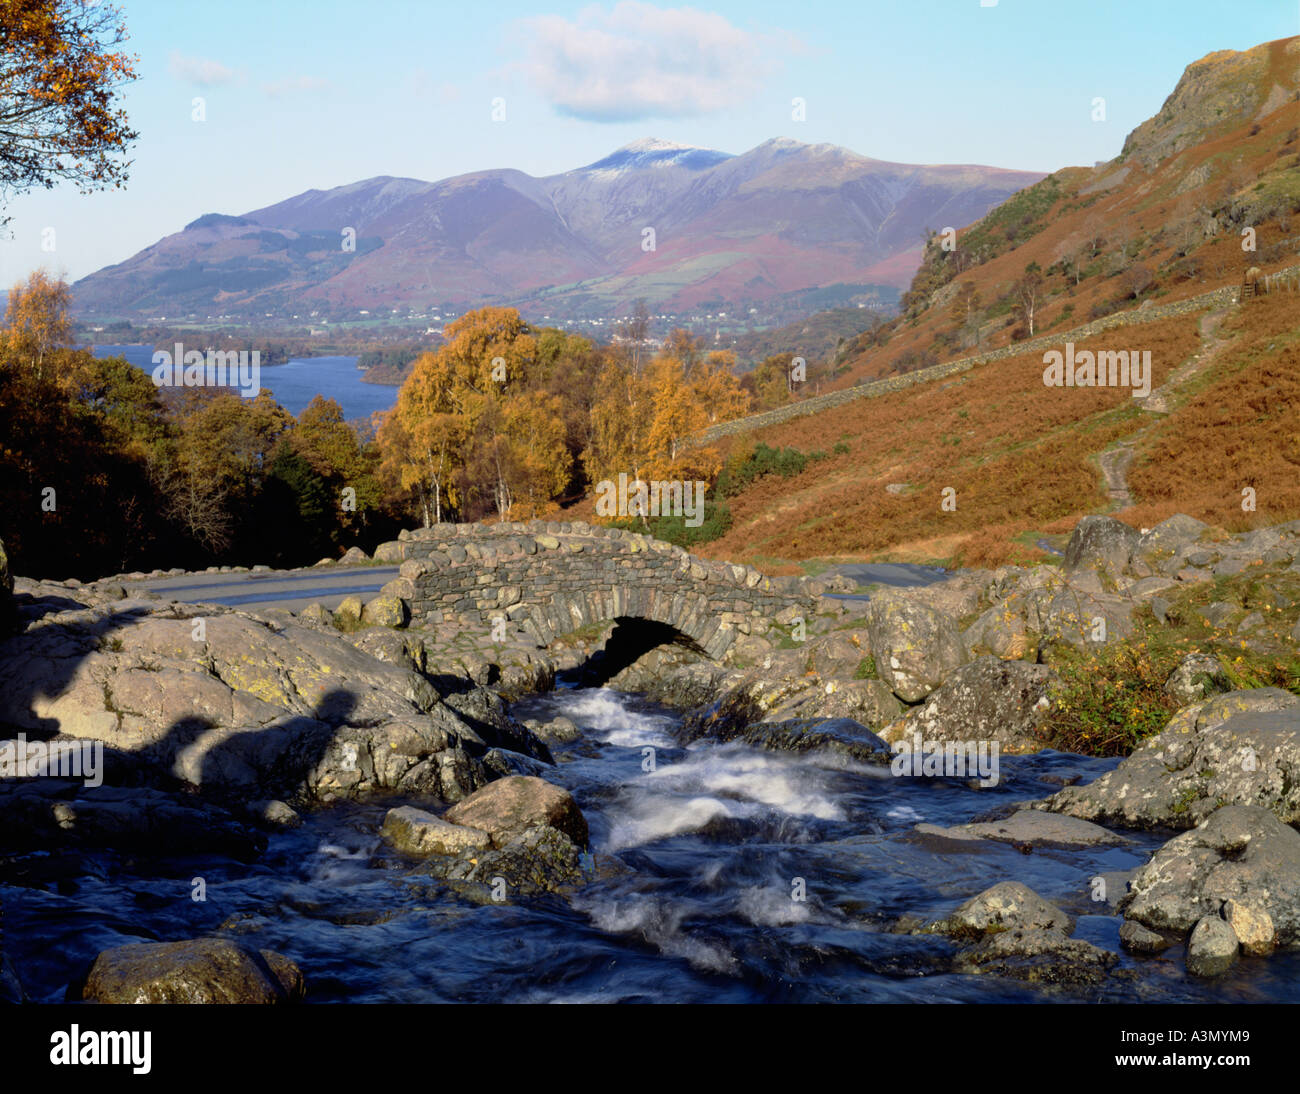 Ashness Bridge looking across to Derwent Water and Skiddaw, within the Lake District, Cumbria - Stock Image